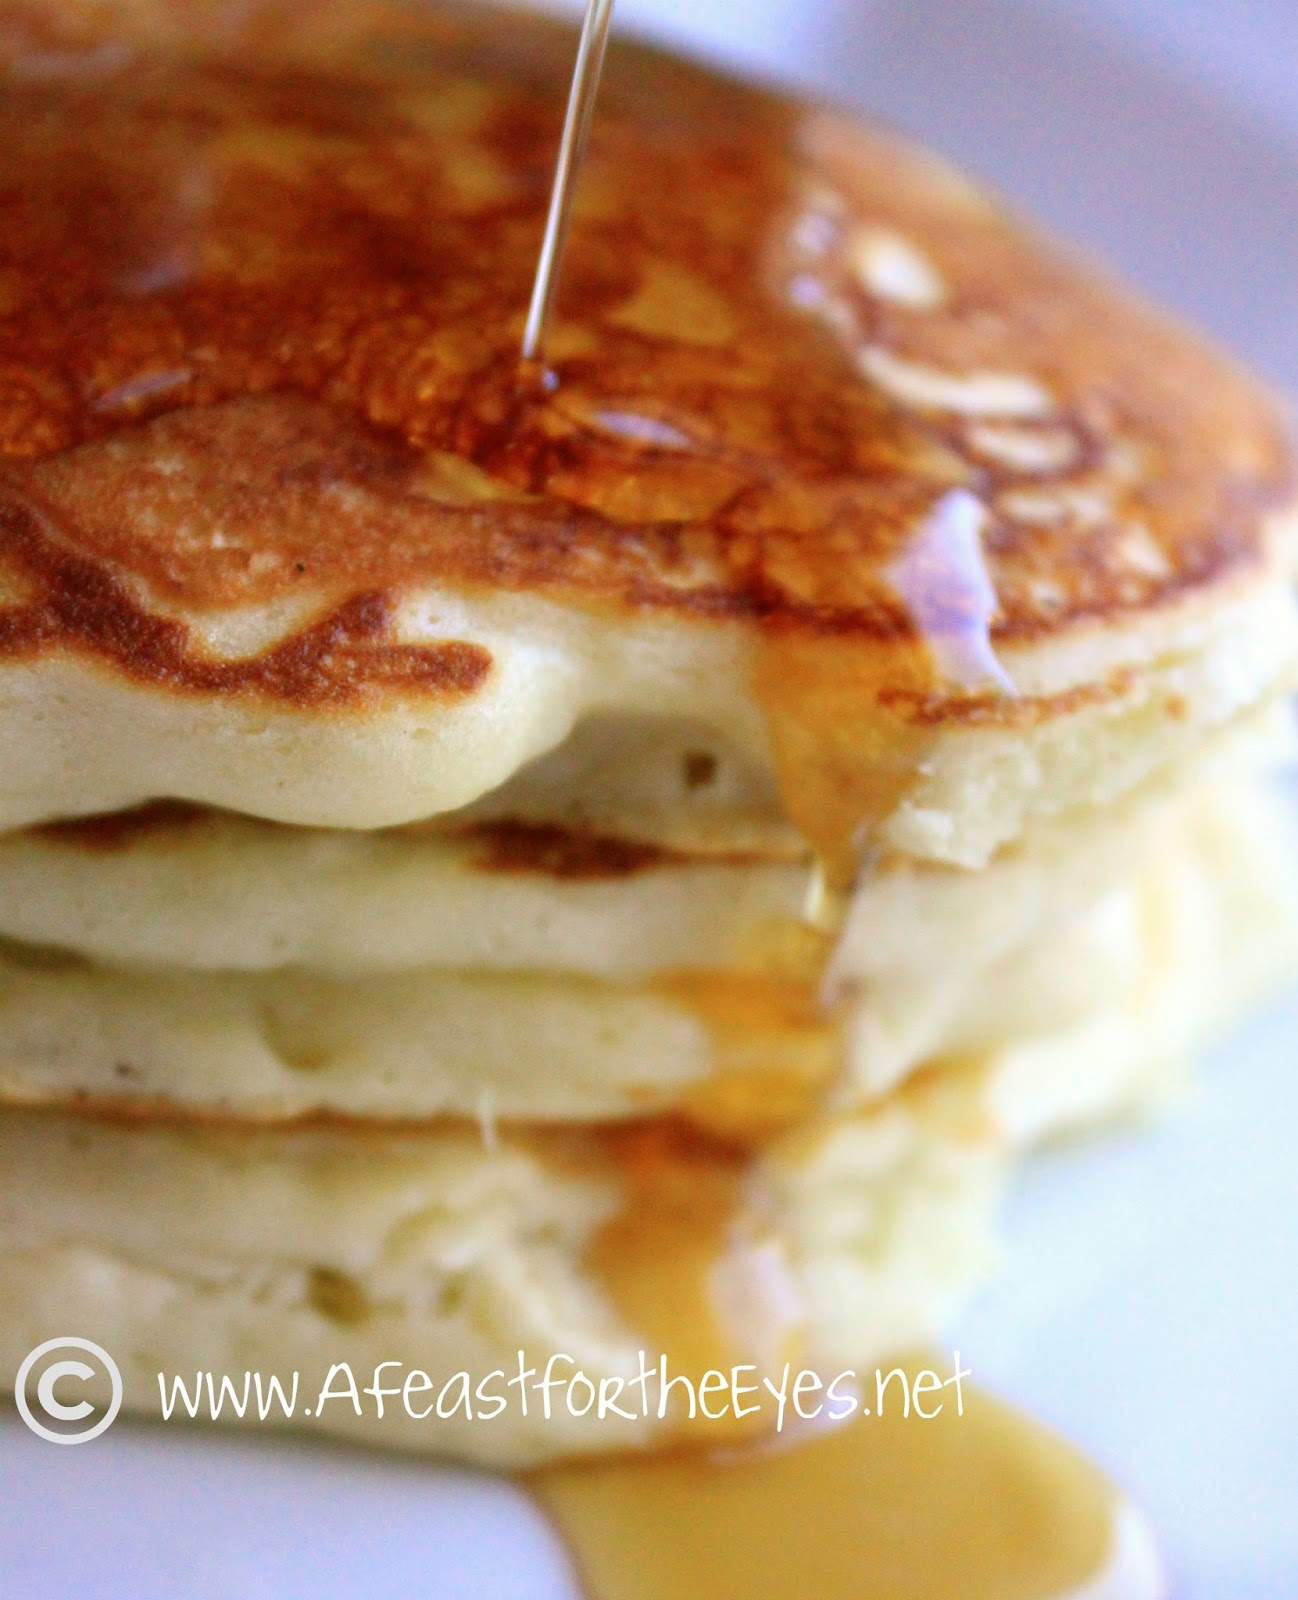 A feast for the eyes buttermilk pancakes for two of course pure maple syrup is the perfect finishing touch for homemade pancakes it costs a lot more than pancake syrup but there isnt any artificial ccuart Images